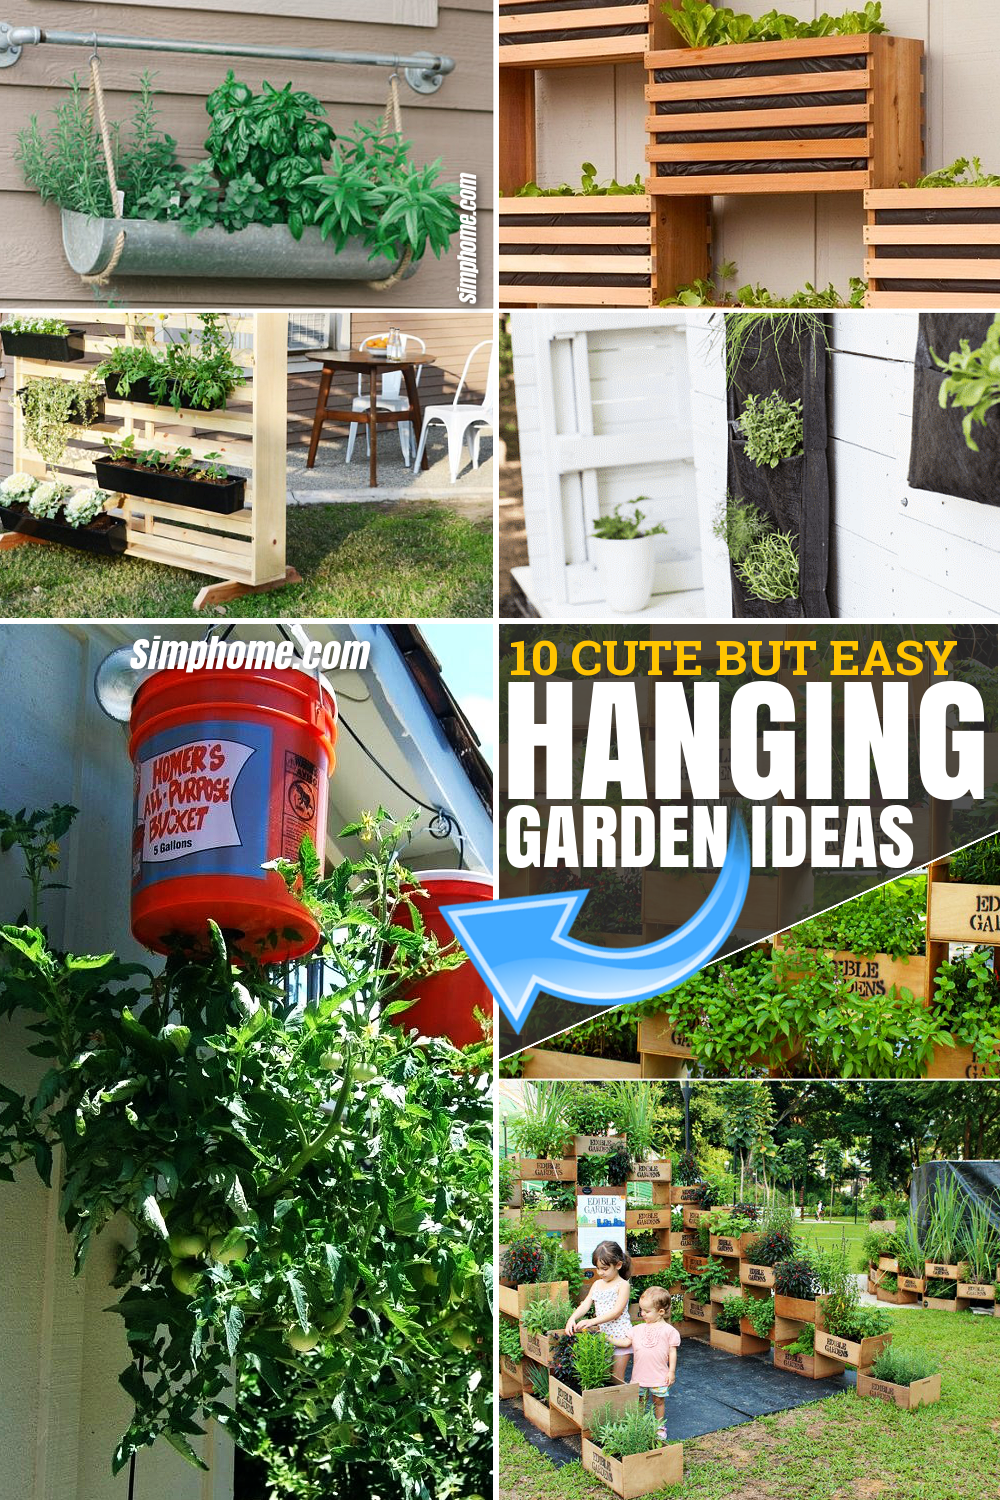 10 cute but easy hanging garden ideas via SIMPHOME.COM Featured Pinterest Image